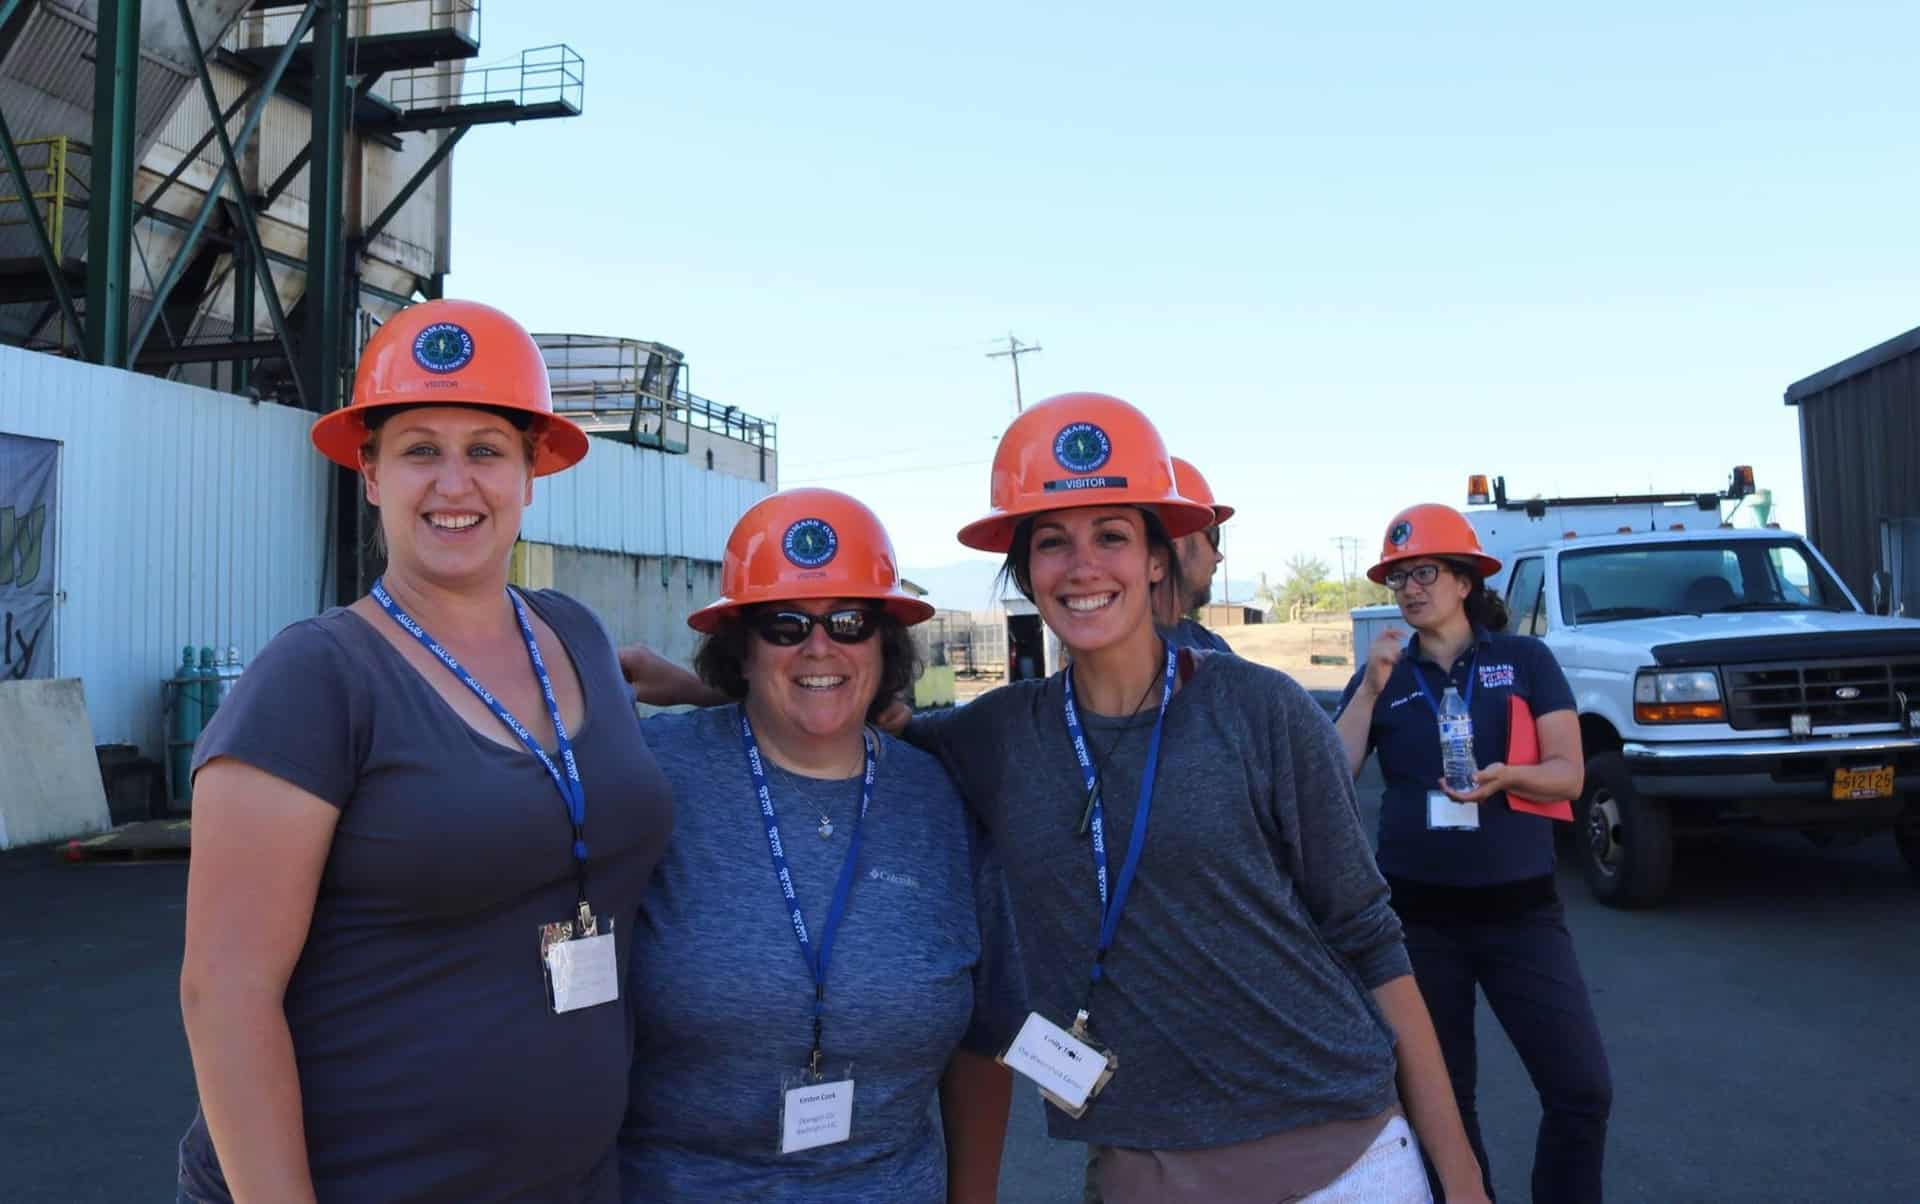 Three participants pose while on a tour of a biomass plant, hardhats and all!